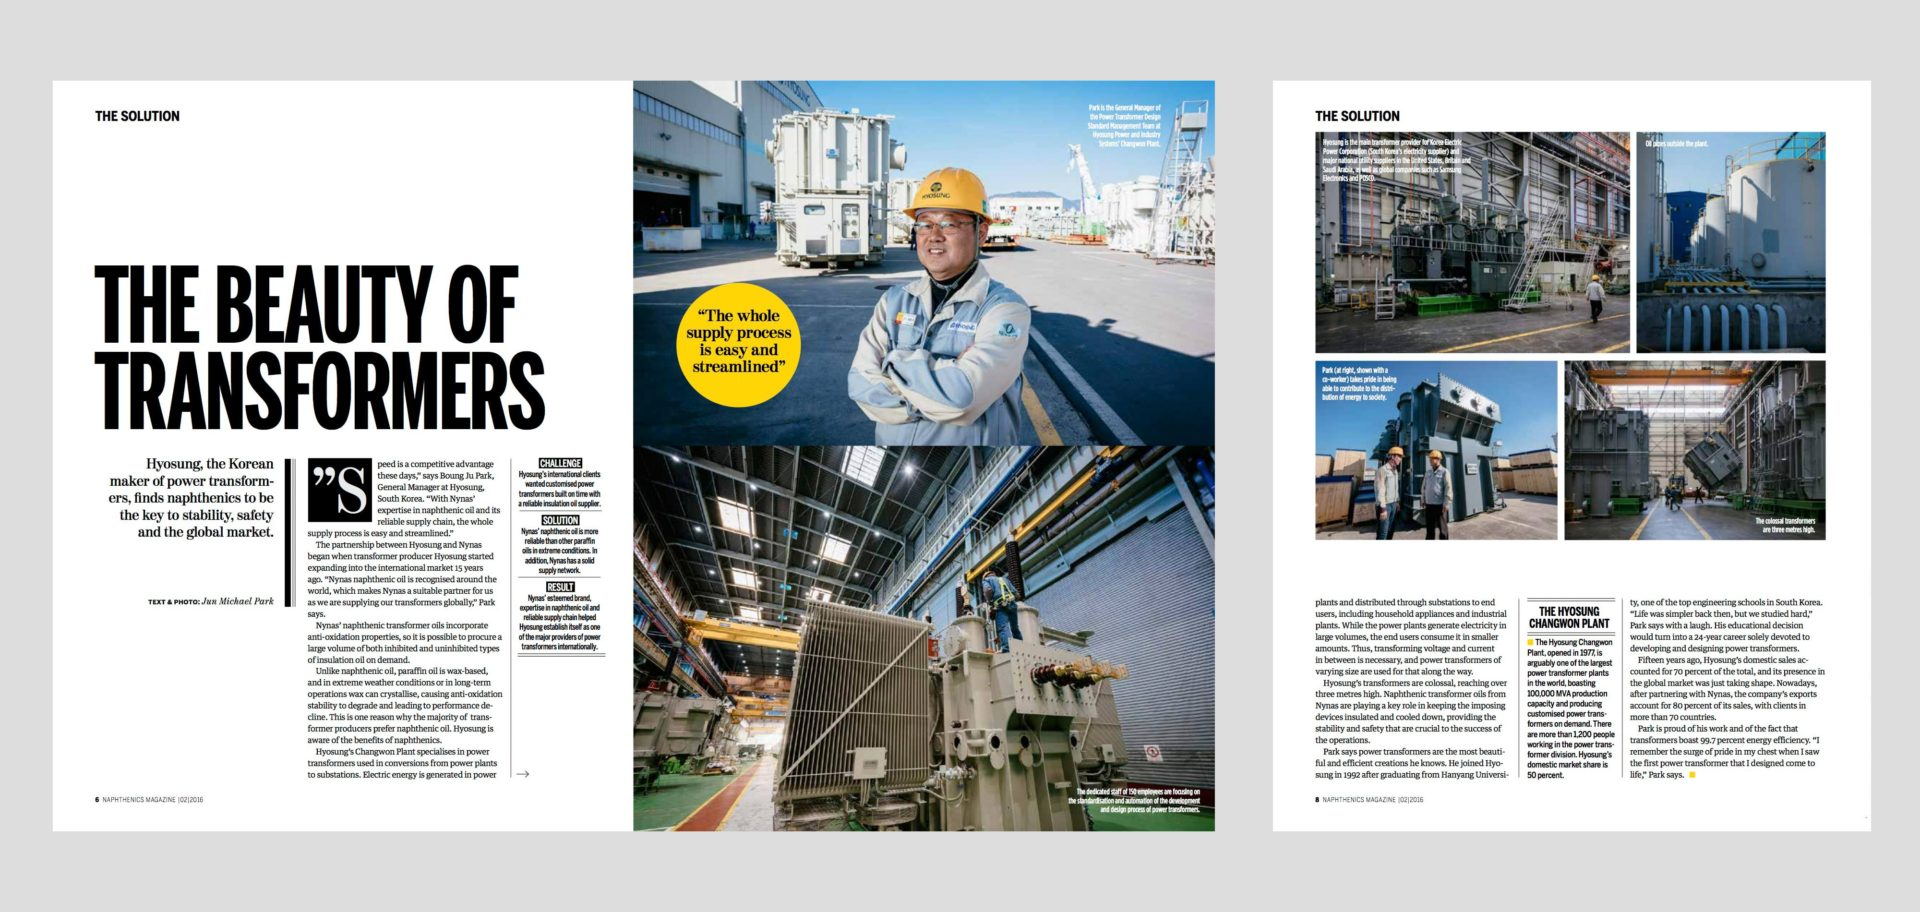 Hyosung Changwon Plant - Text and Photo Type: Corporate Publishing Client: Nynas, Naphthenics Magazine Agency: Agency: Spoon in Sweden Date: April 2016